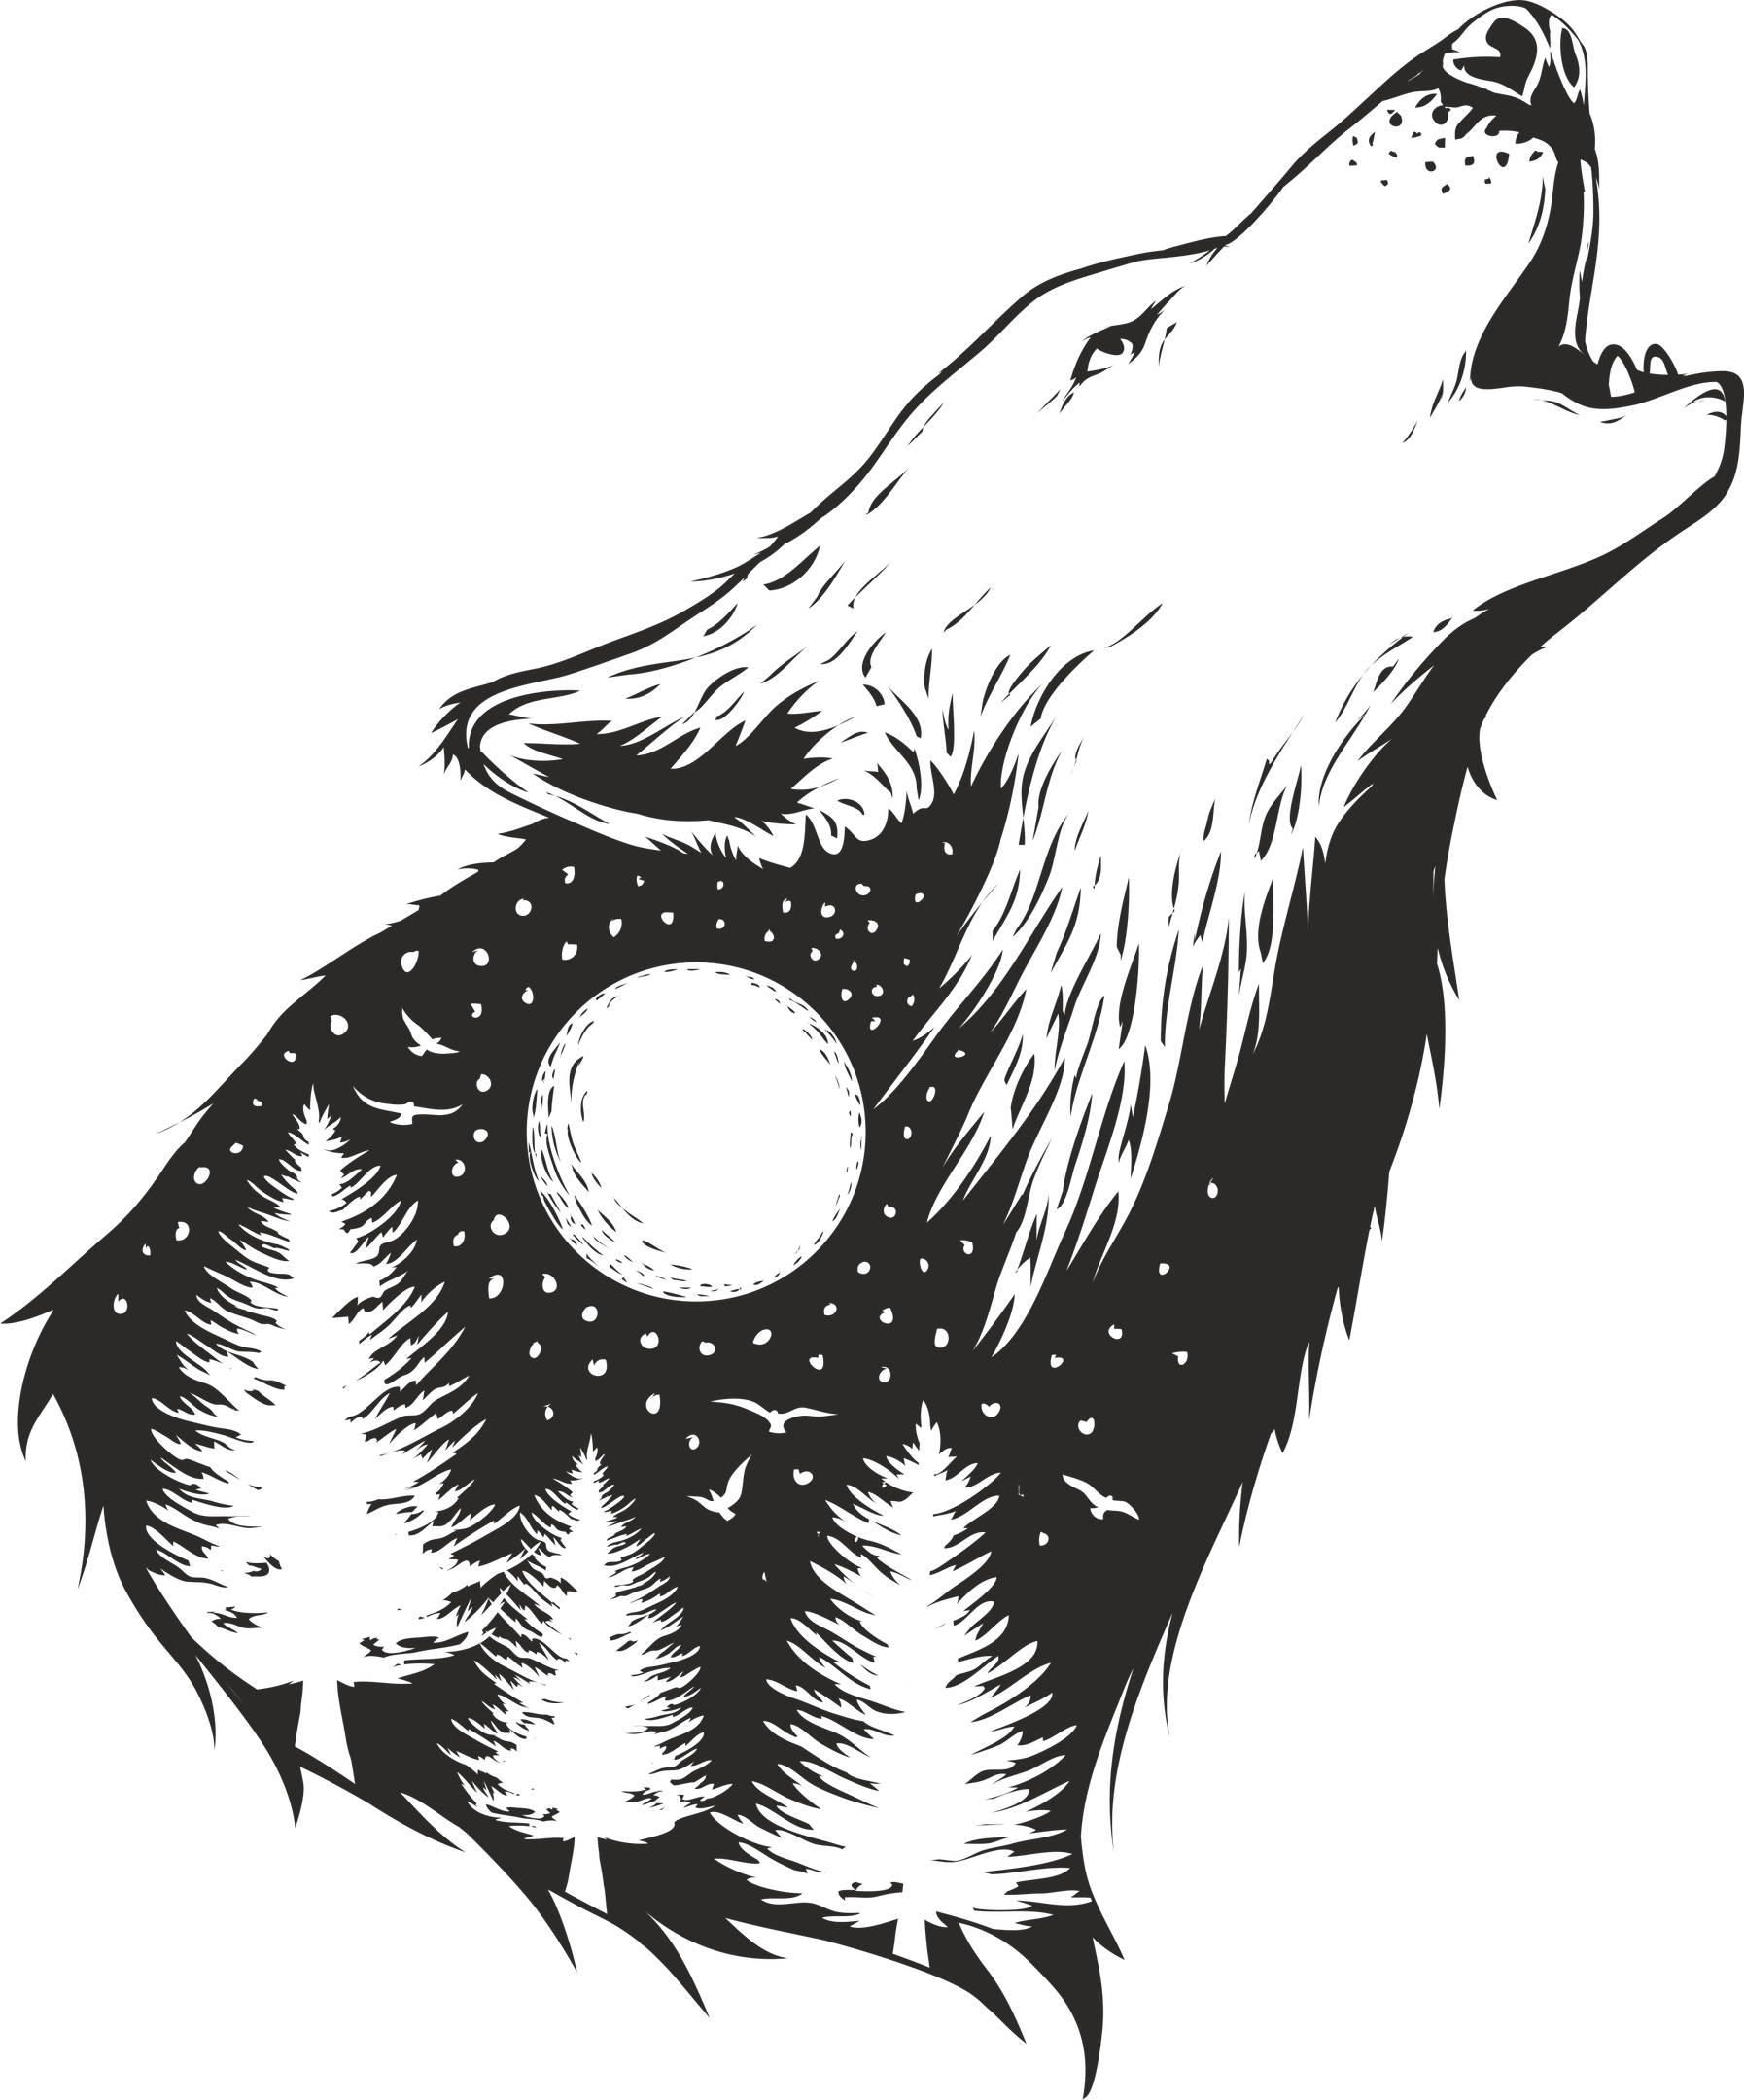 wolf pictures to print wolf coloring pages download and print wolf coloring pages pictures to print wolf